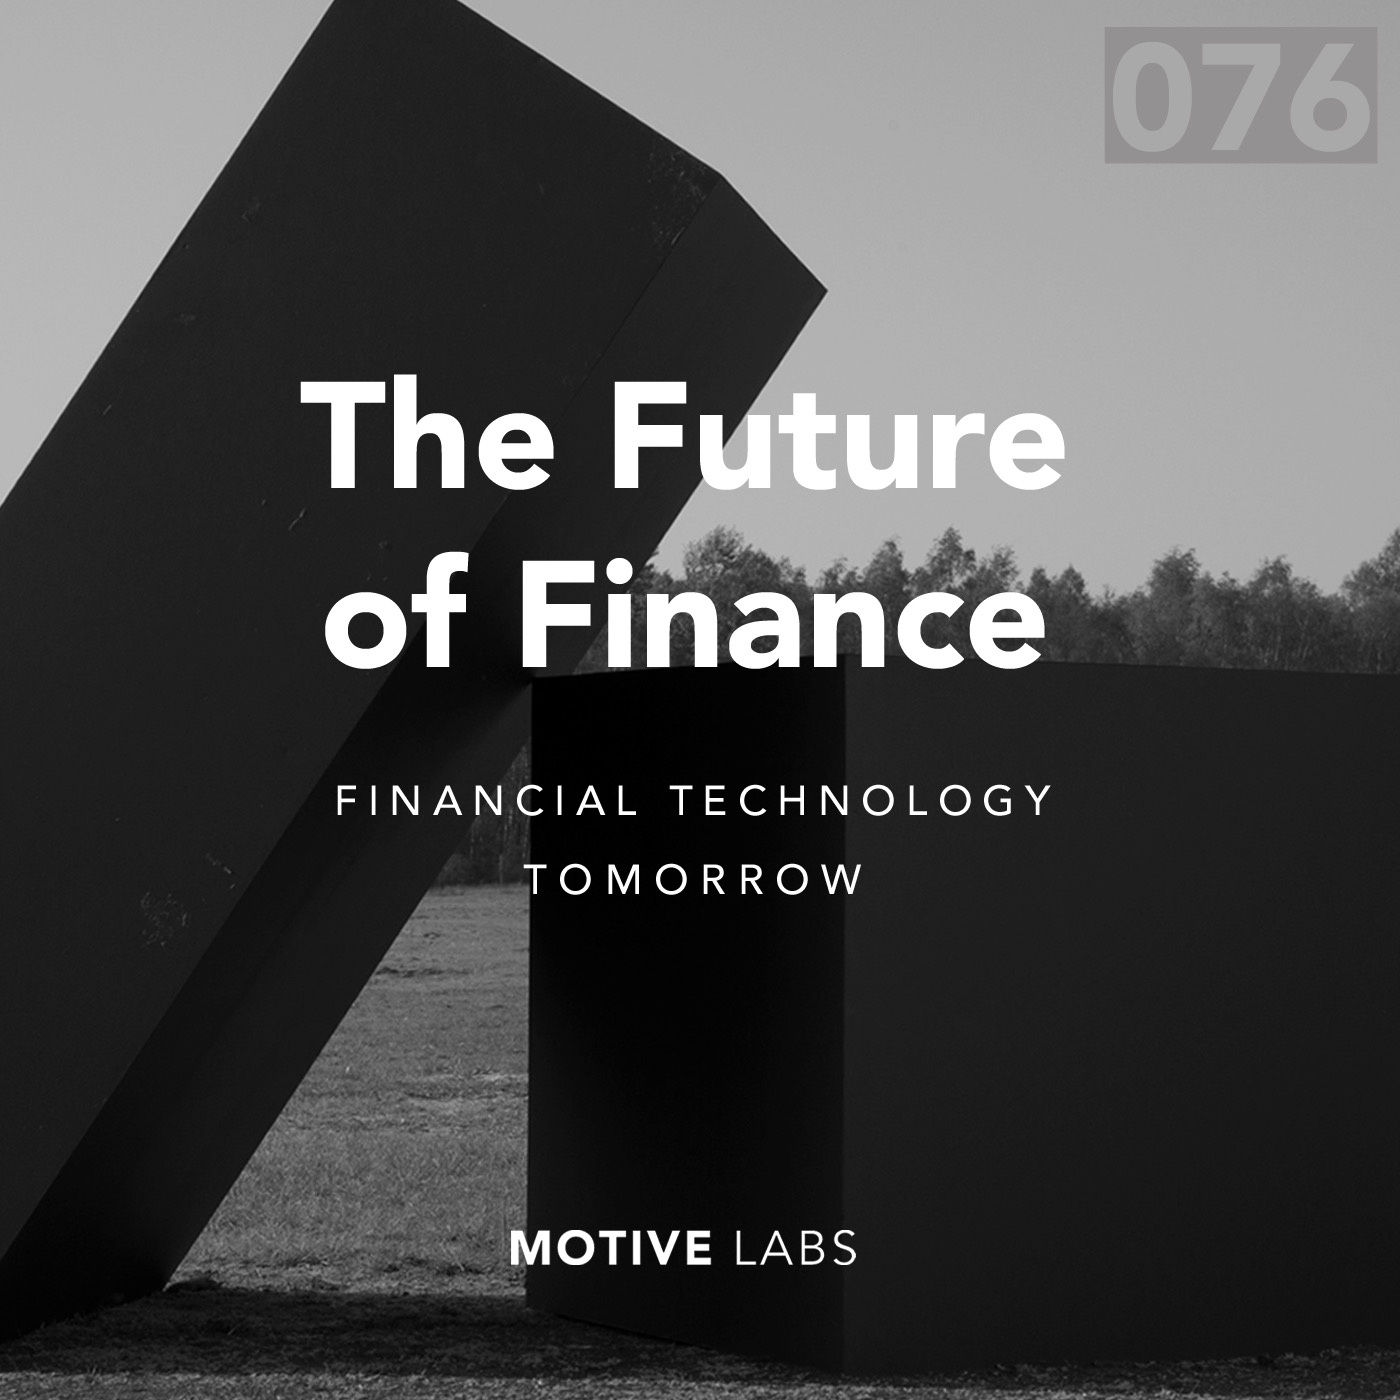 076 - Adrian Jones, rethinking insurance and reinsurance for the future